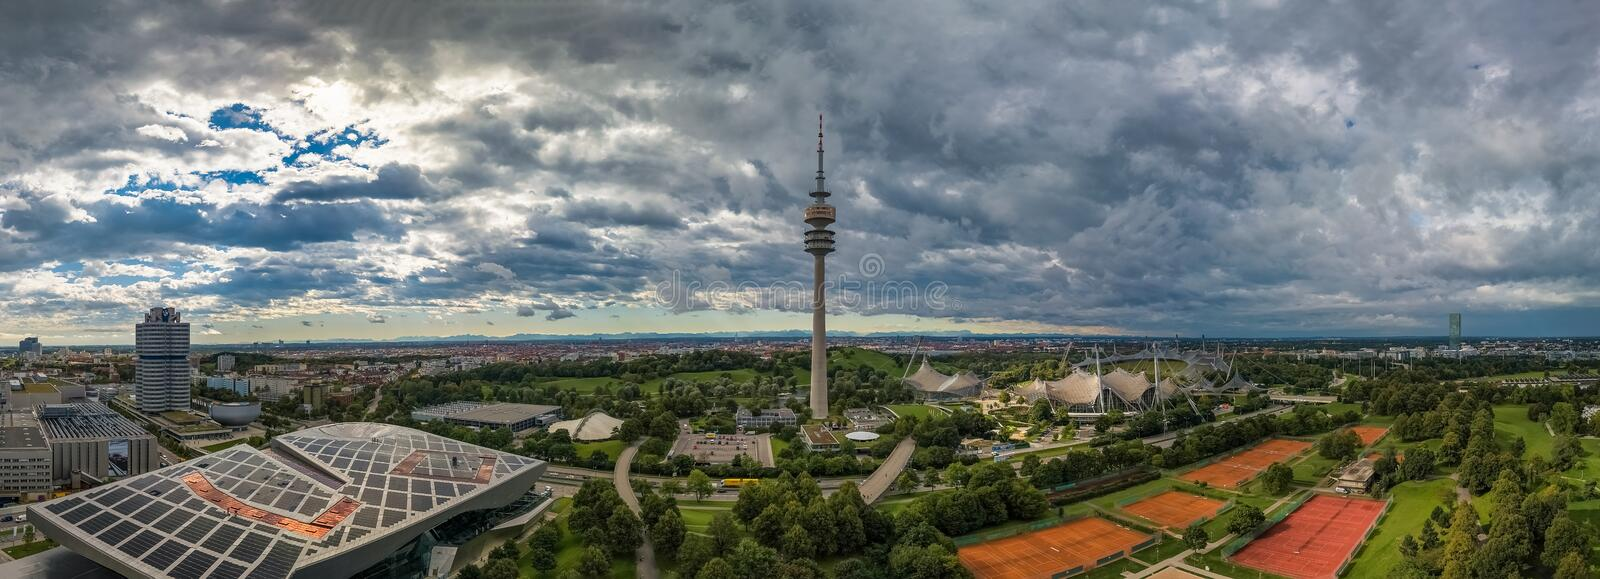 Aerial view of Olympiapark and the Olympiaturm Olympic Tower Munich. royalty free stock photography